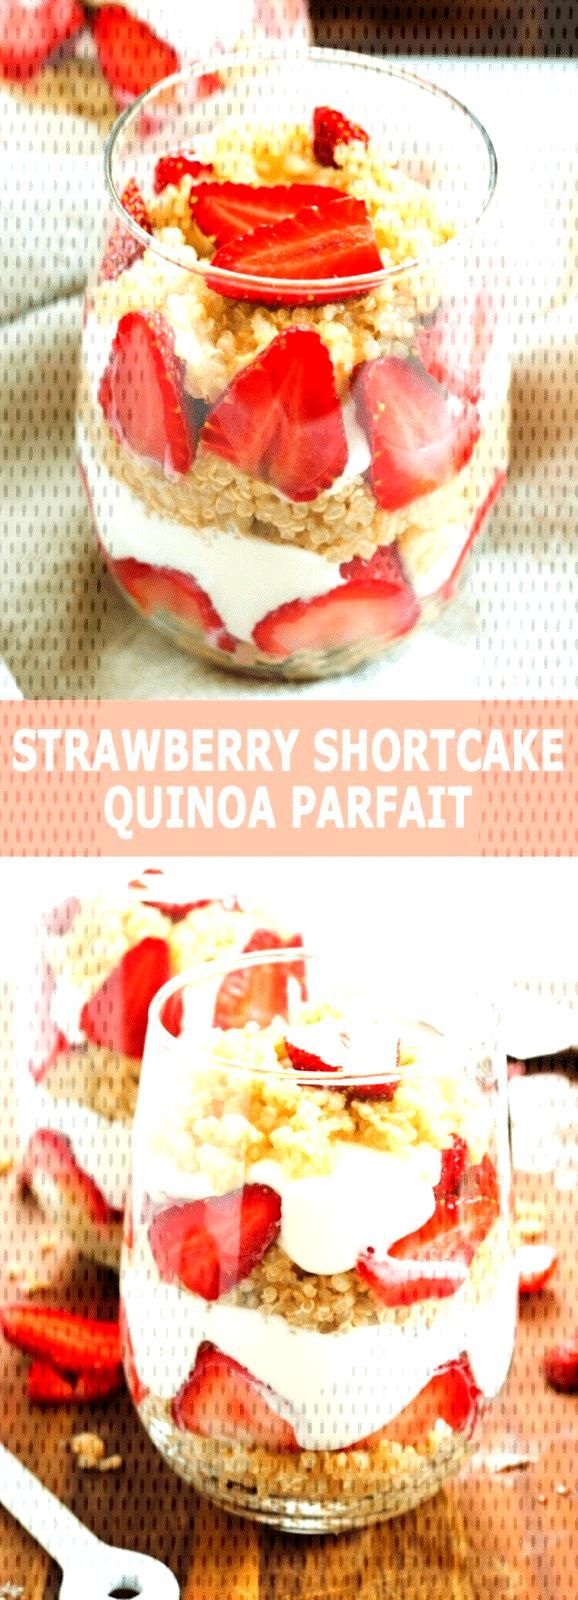 Layers of sweetened quinoa with Greek yogurt and strawberries make for a strawberry shortcake quin